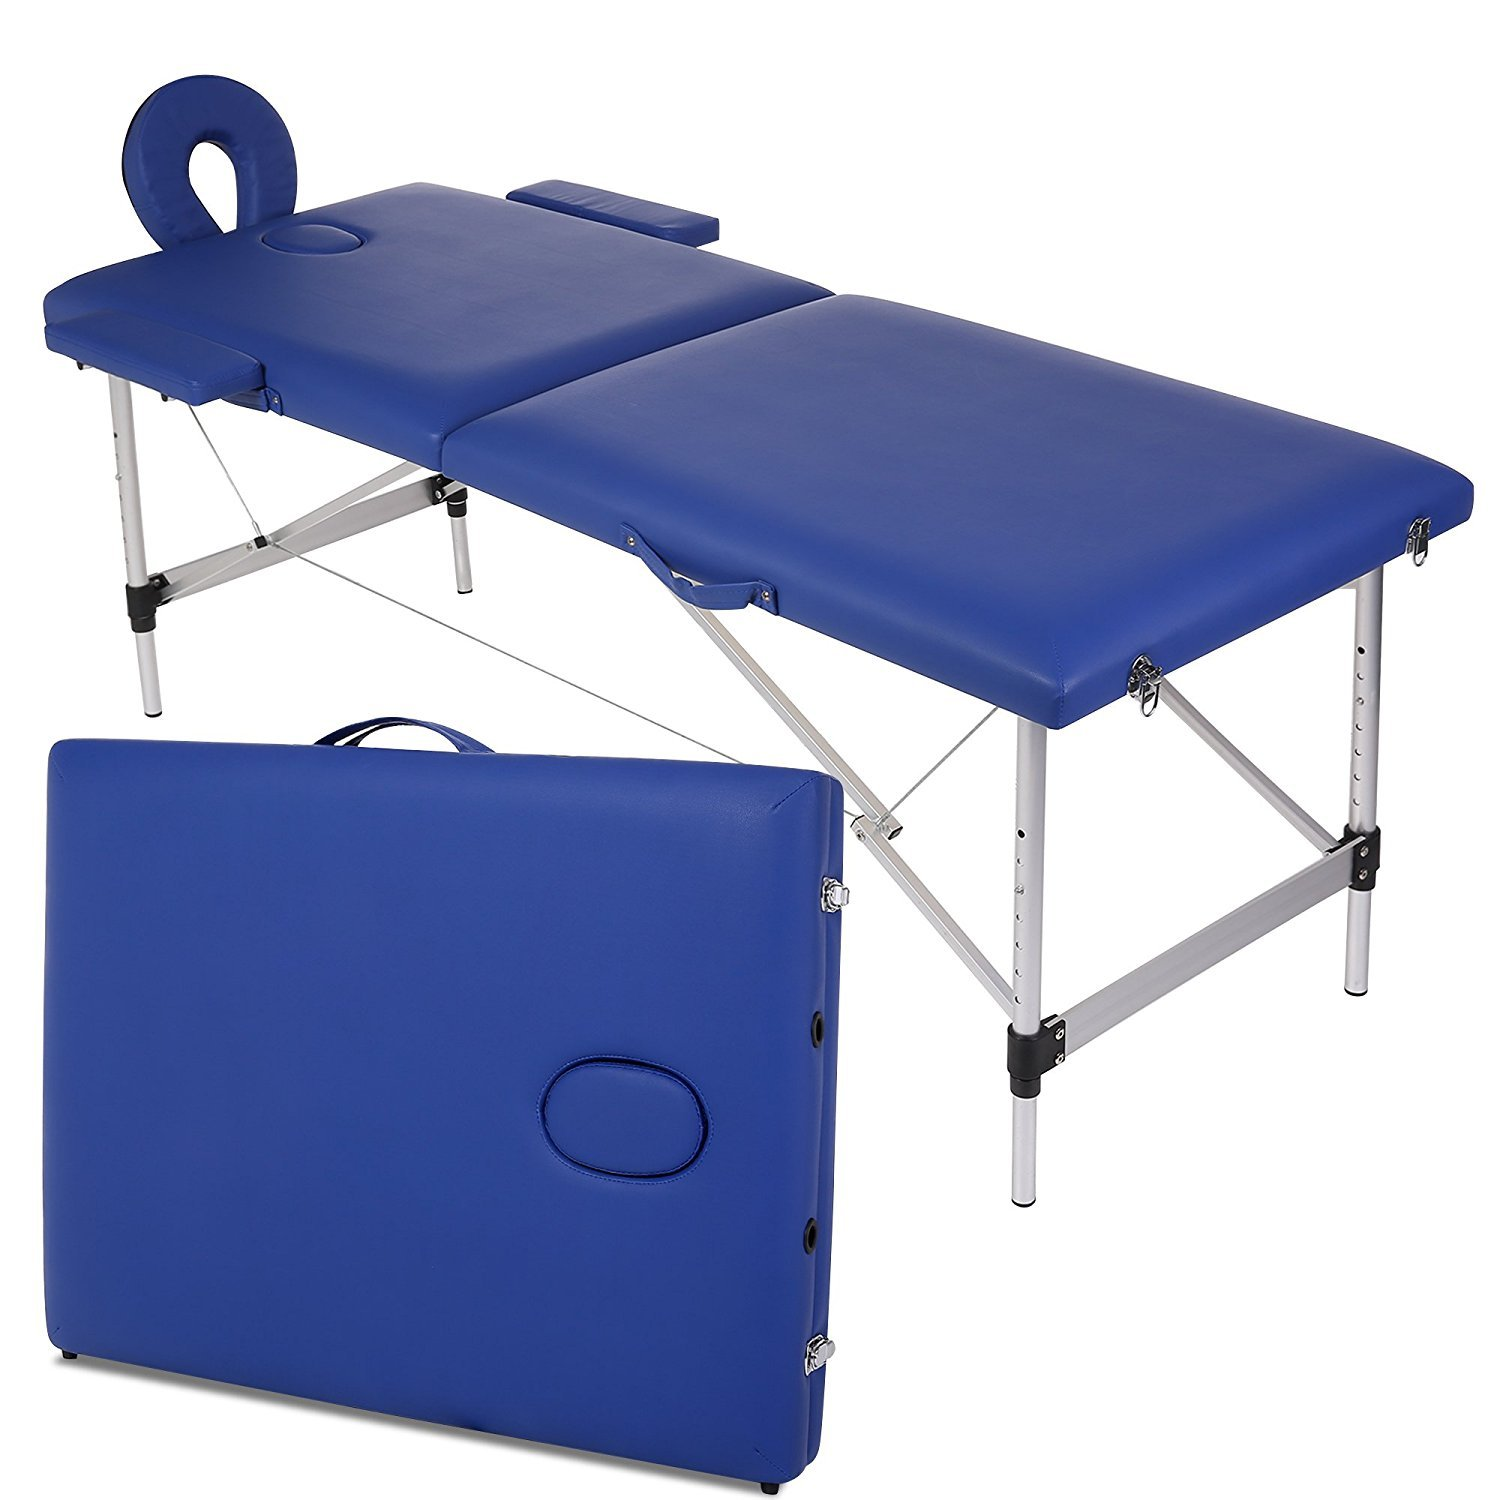 Kaluo Portable Professional Massage Table Two-Fold Pad SPA Facial Chair Bed with Carry Case (Blue)